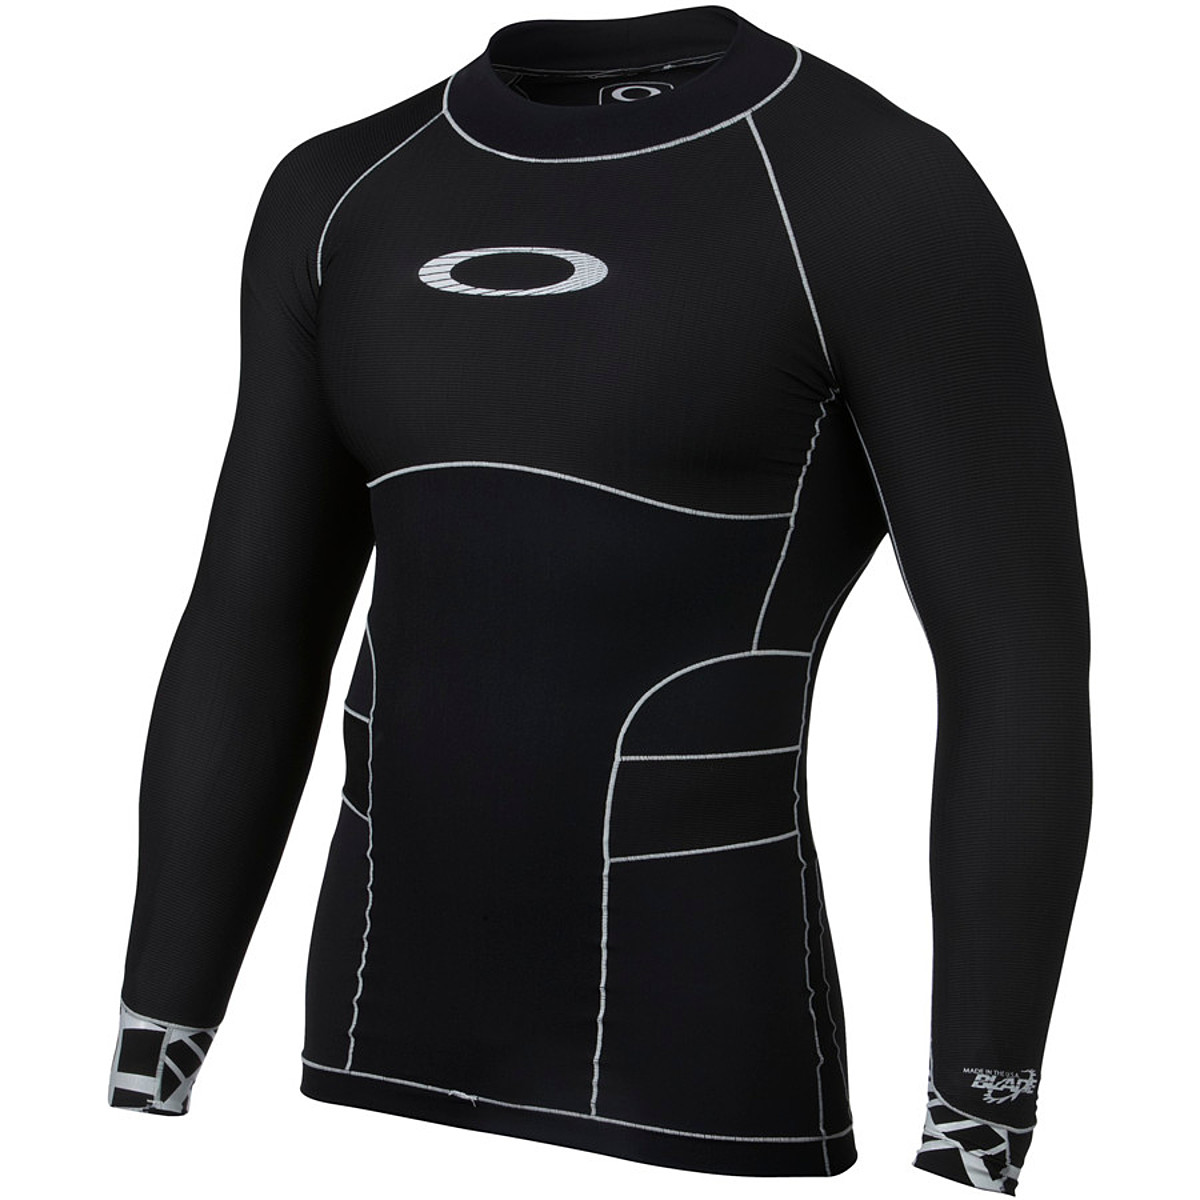 photo of a Oakley paddling apparel